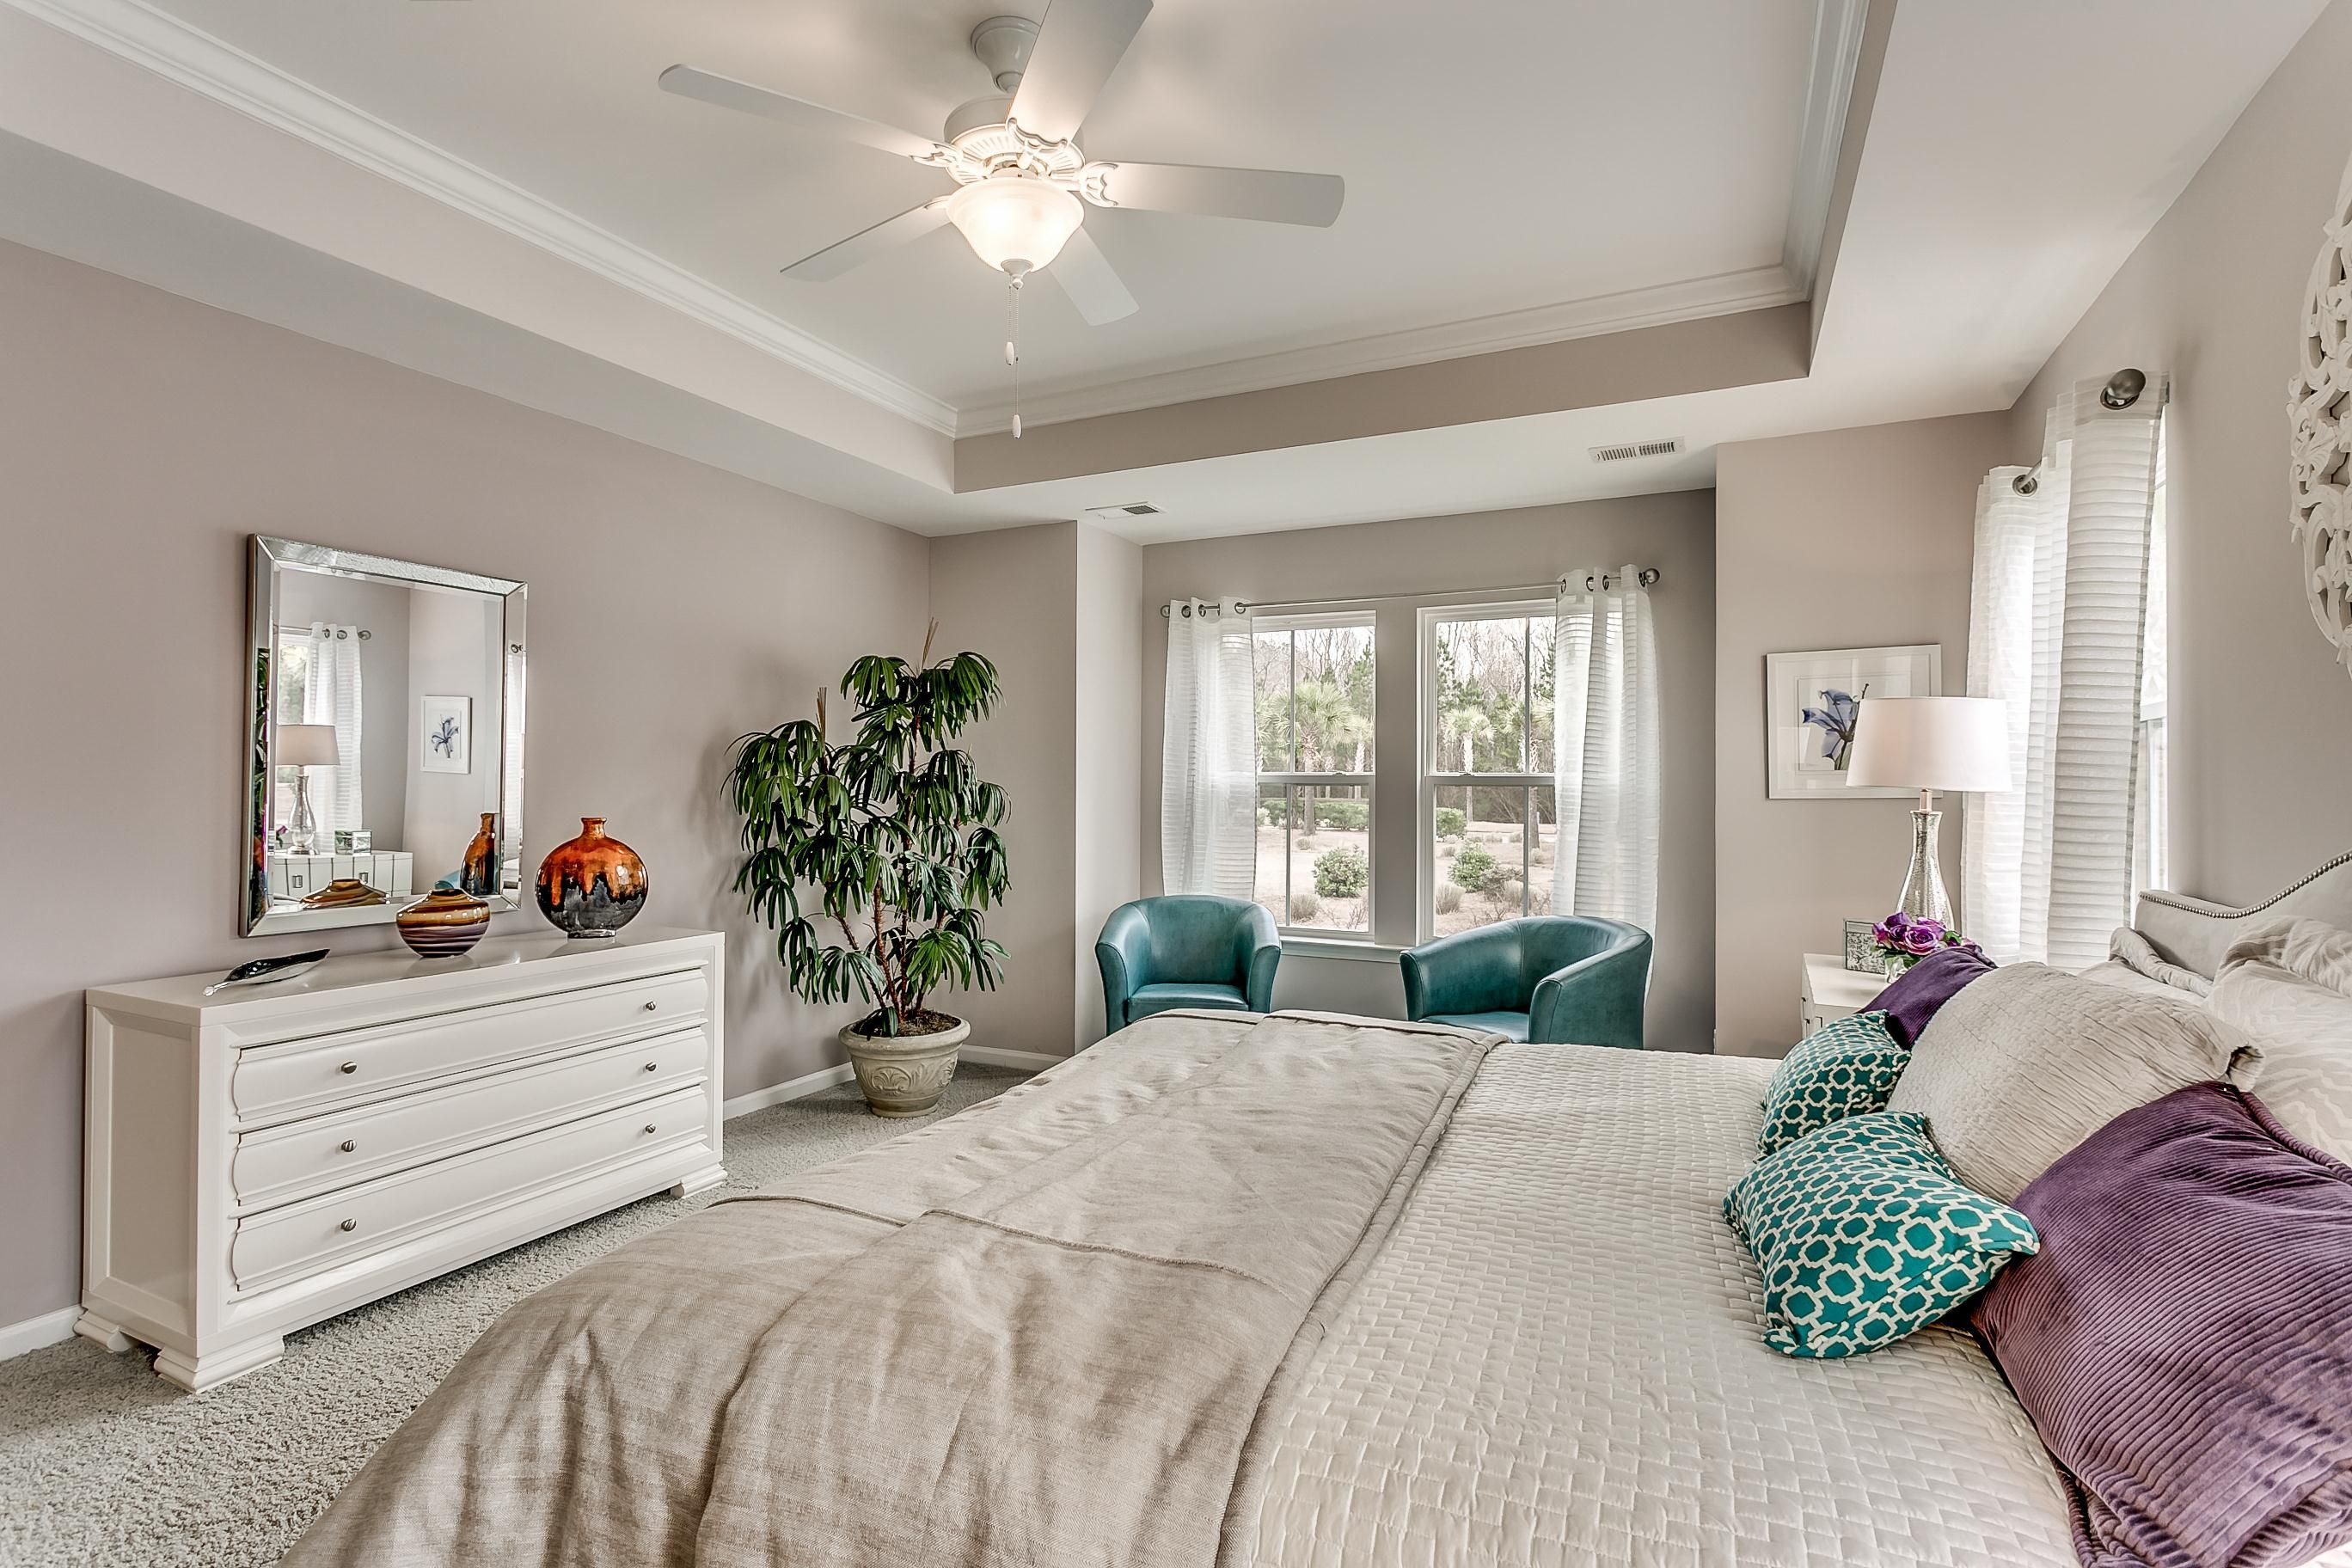 Bedroom featured in the Palmetto By RealStar Homes in Wilmington, NC